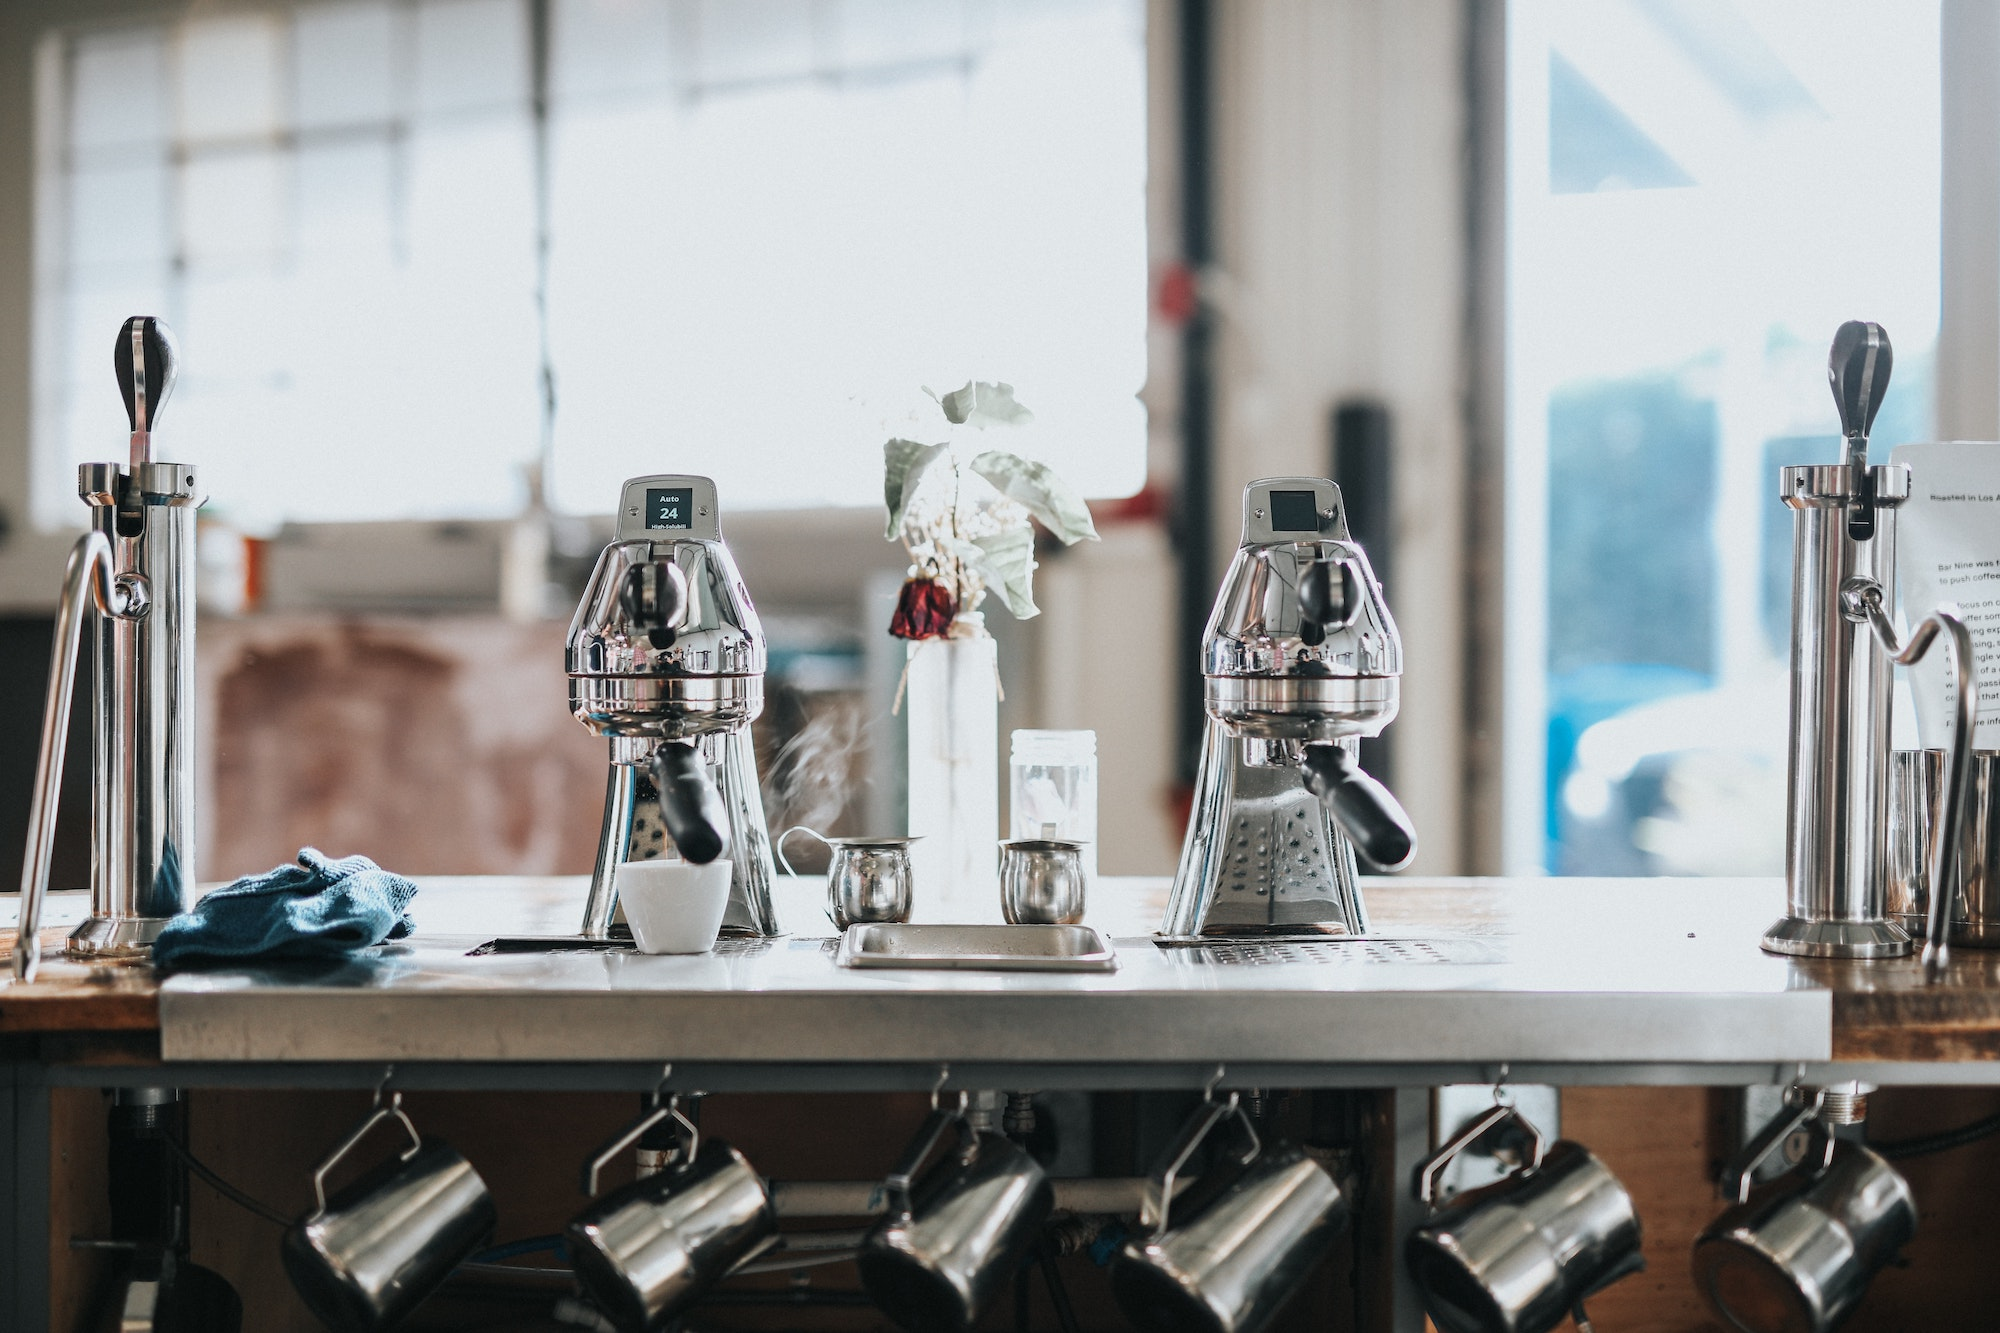 Machines aren't foolproof, so despite the technological advancements in the industry, baristas are still needed to oversee coffee production or fix the kinks when necessary